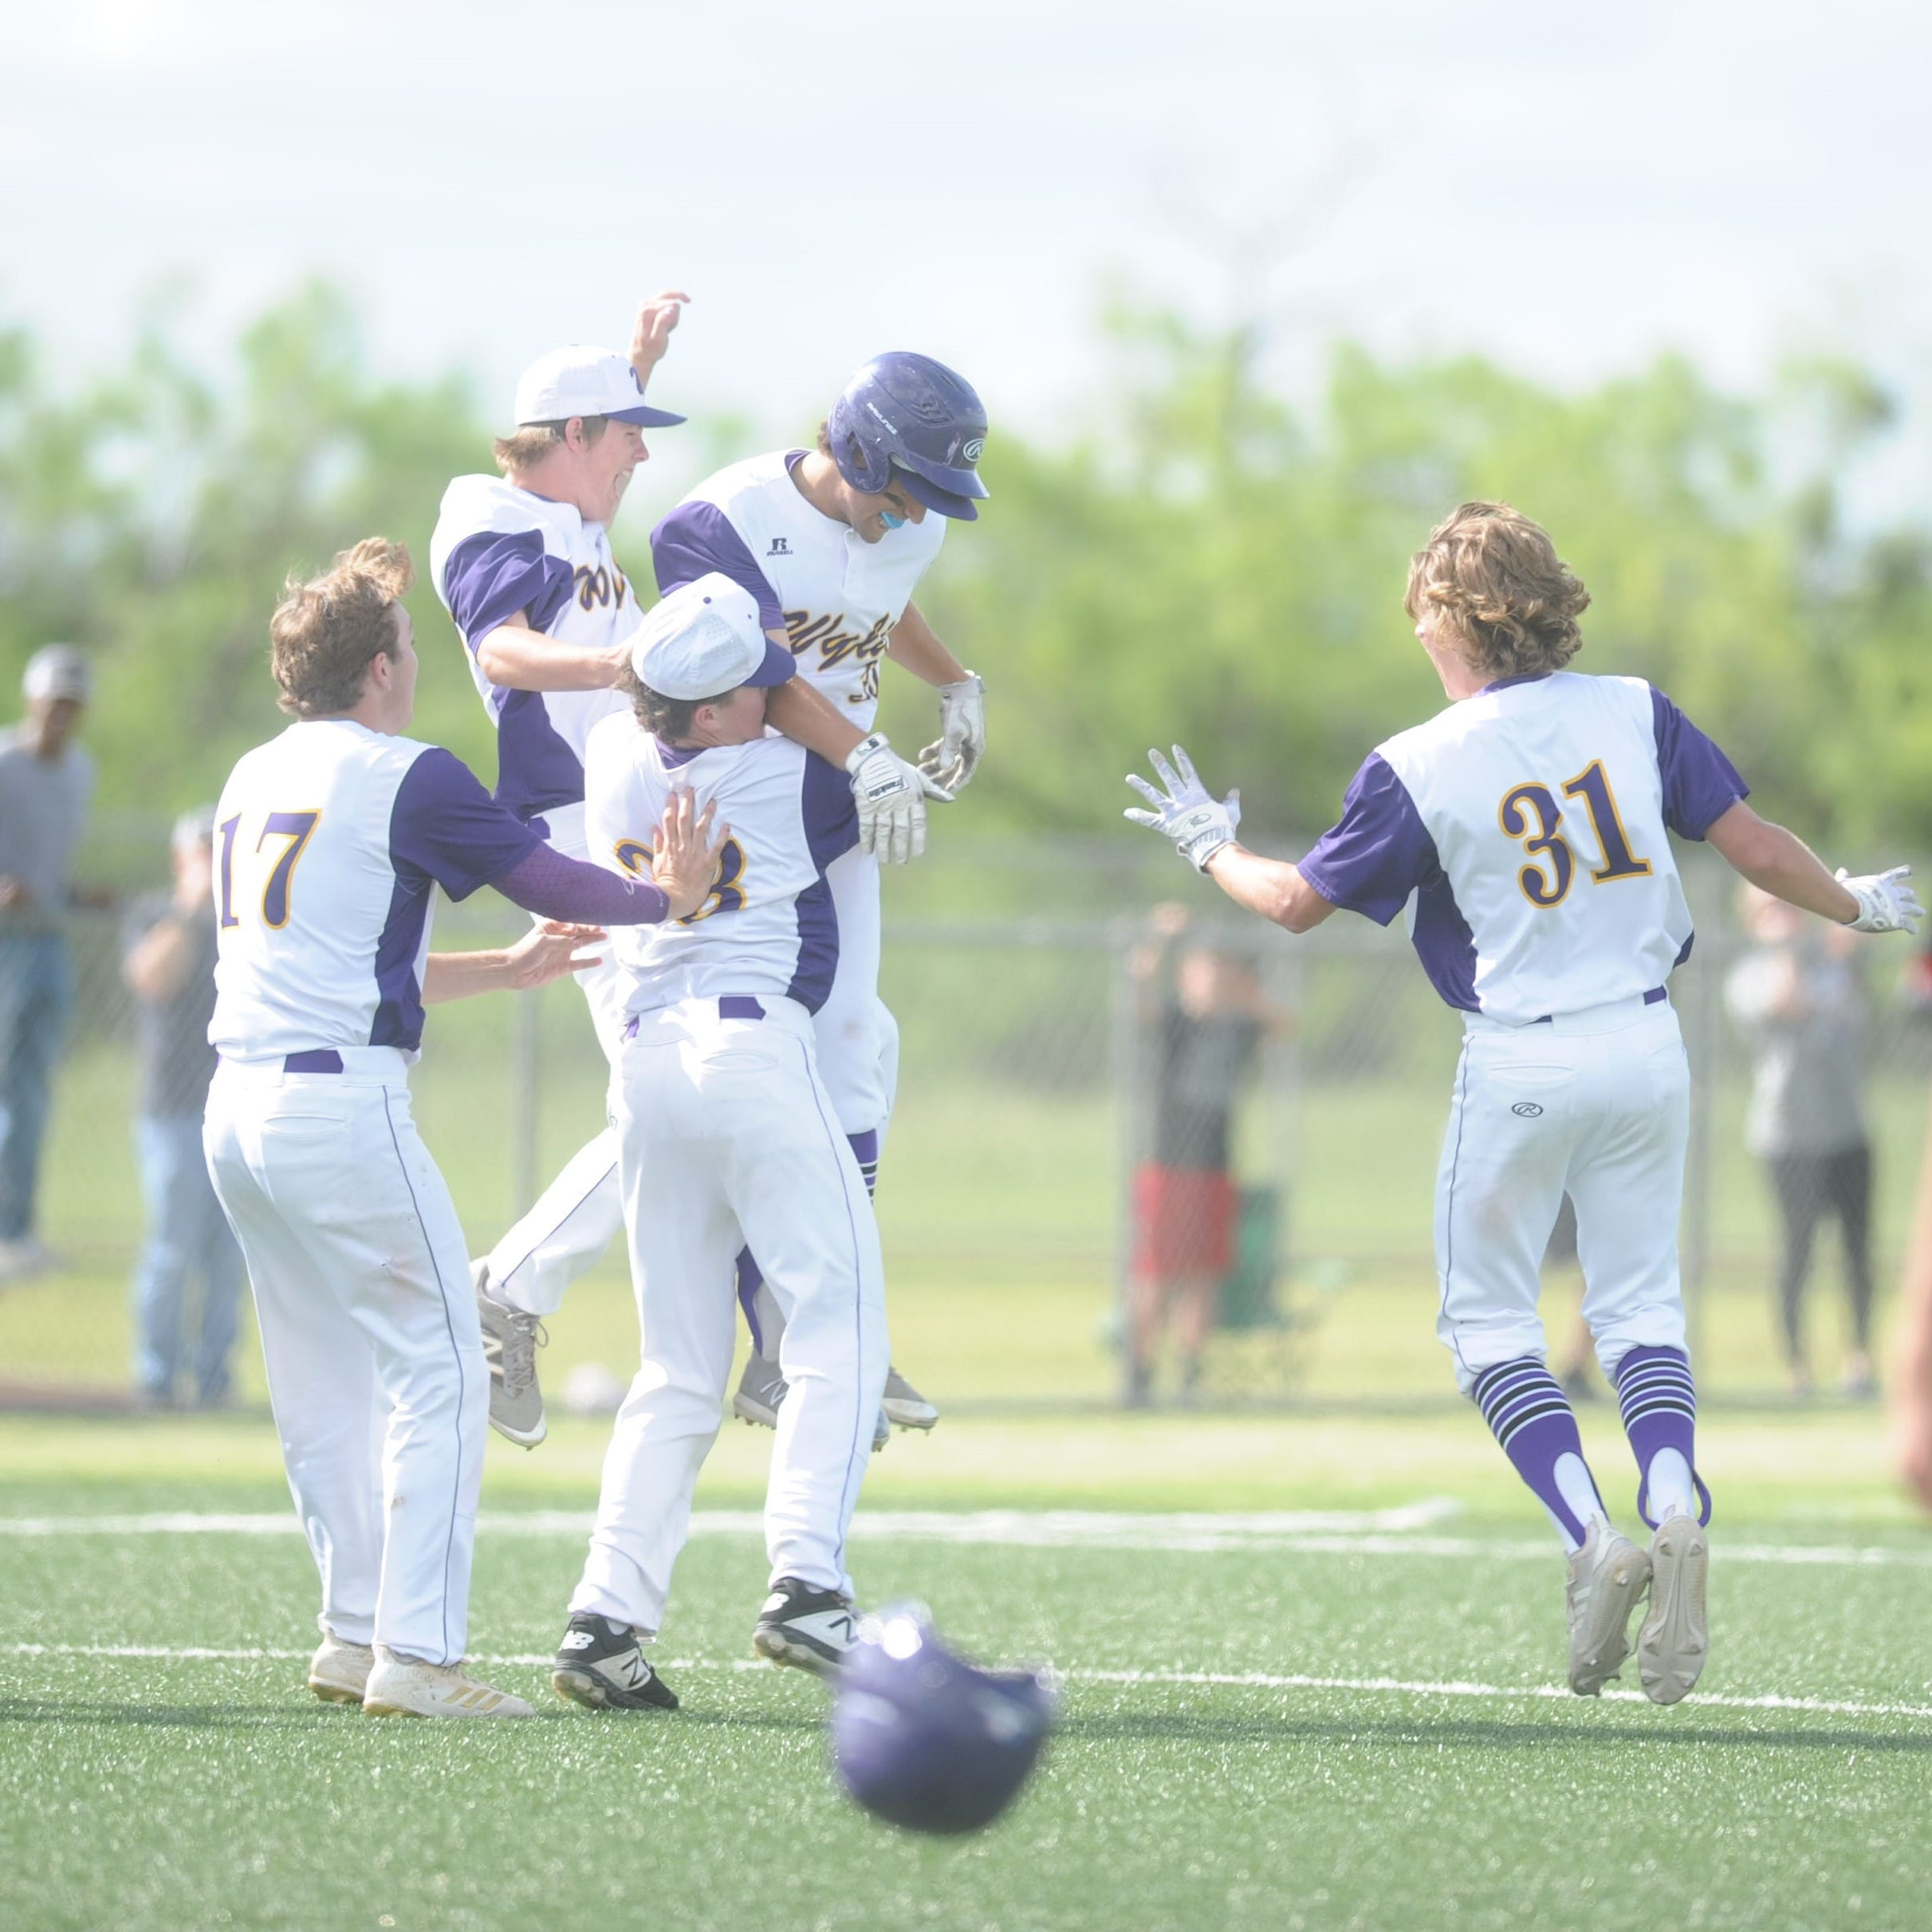 Jaxon Hansen delivers two-out walk-off in extras to send Wylie baseball to area round